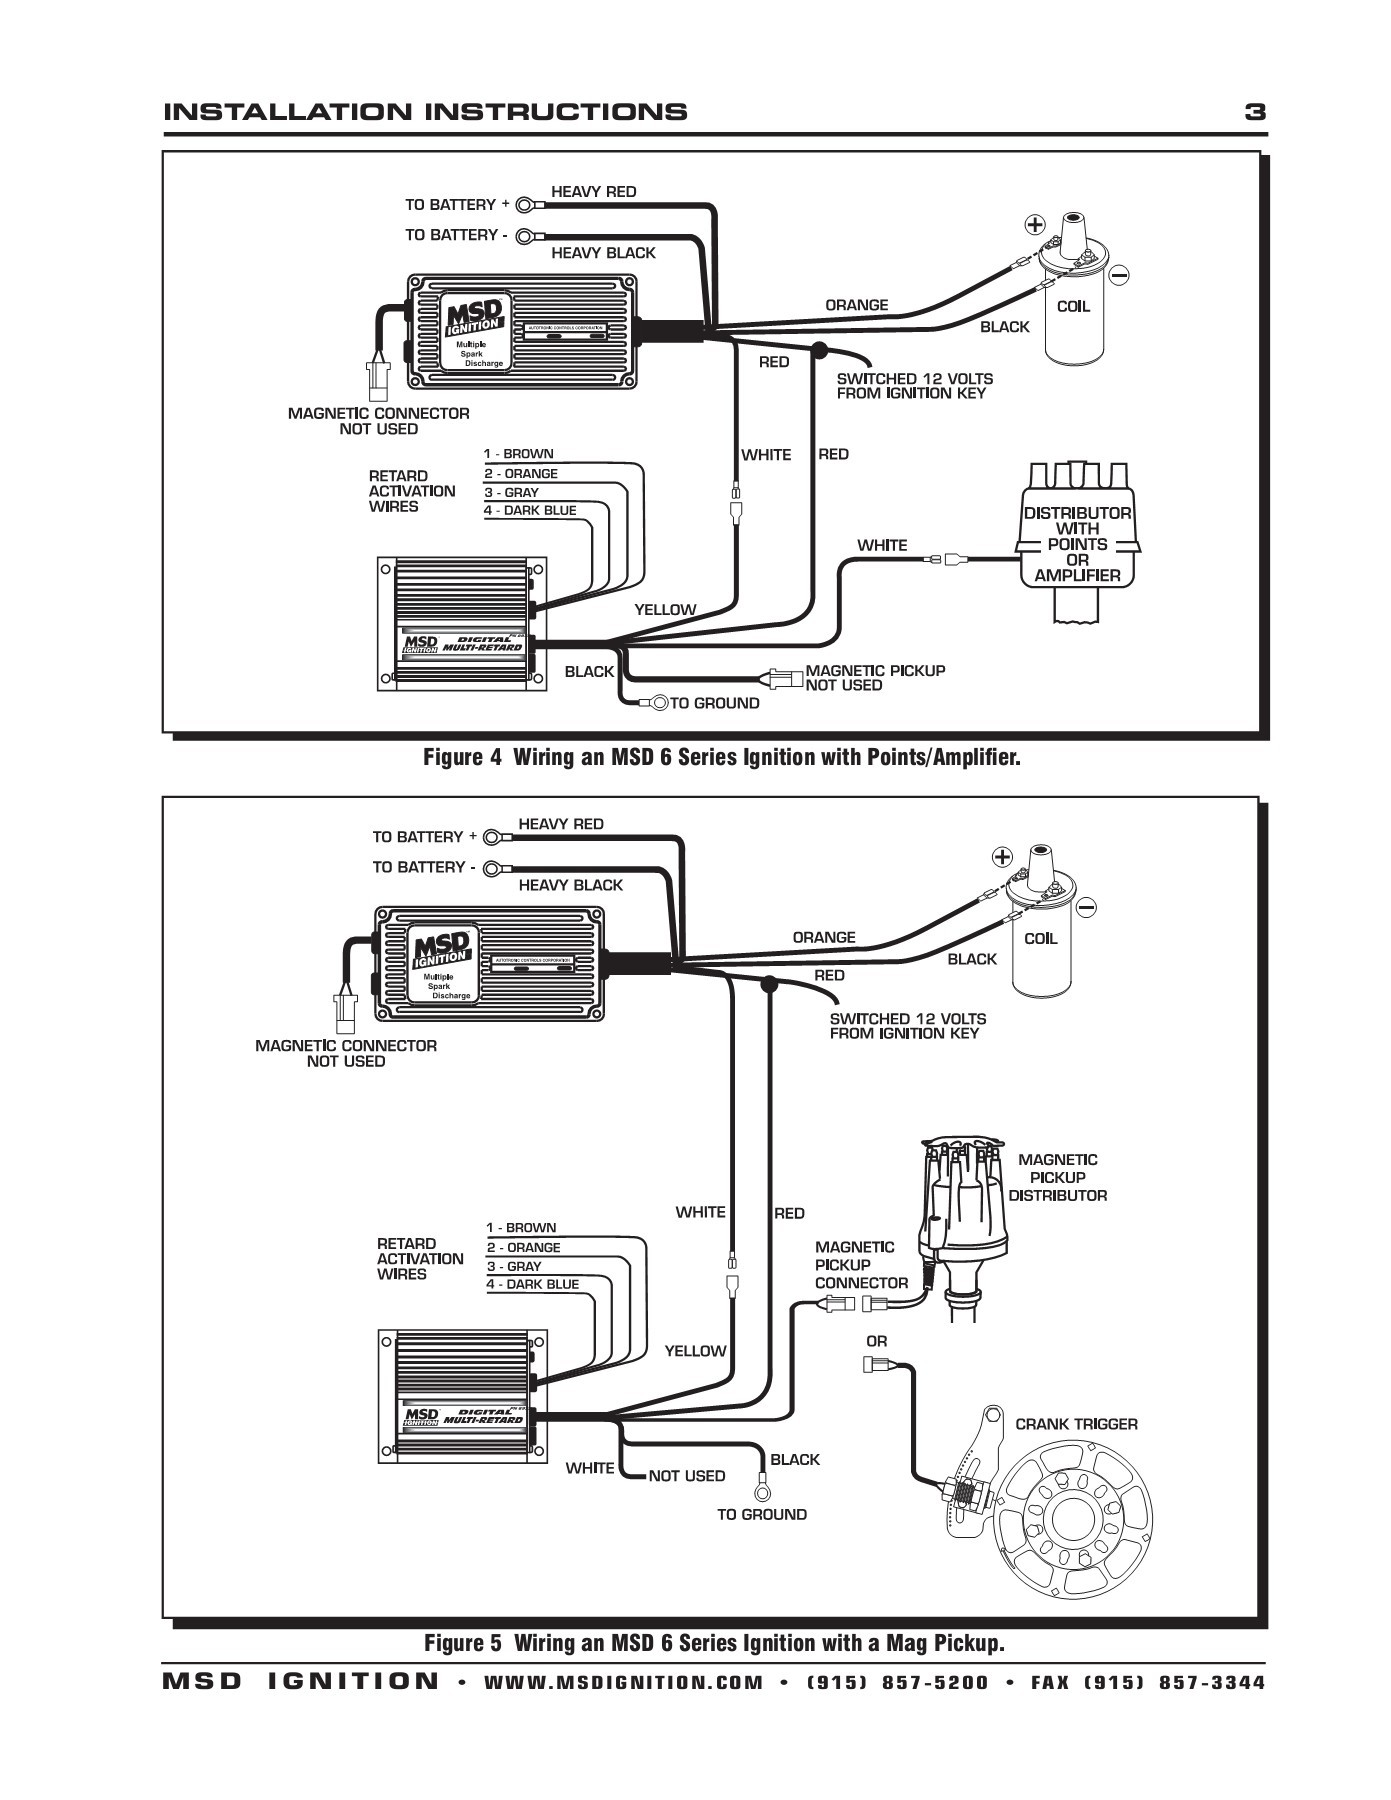 Av 8318 How To Wire A Crank Trigger Wiring Diagram Further